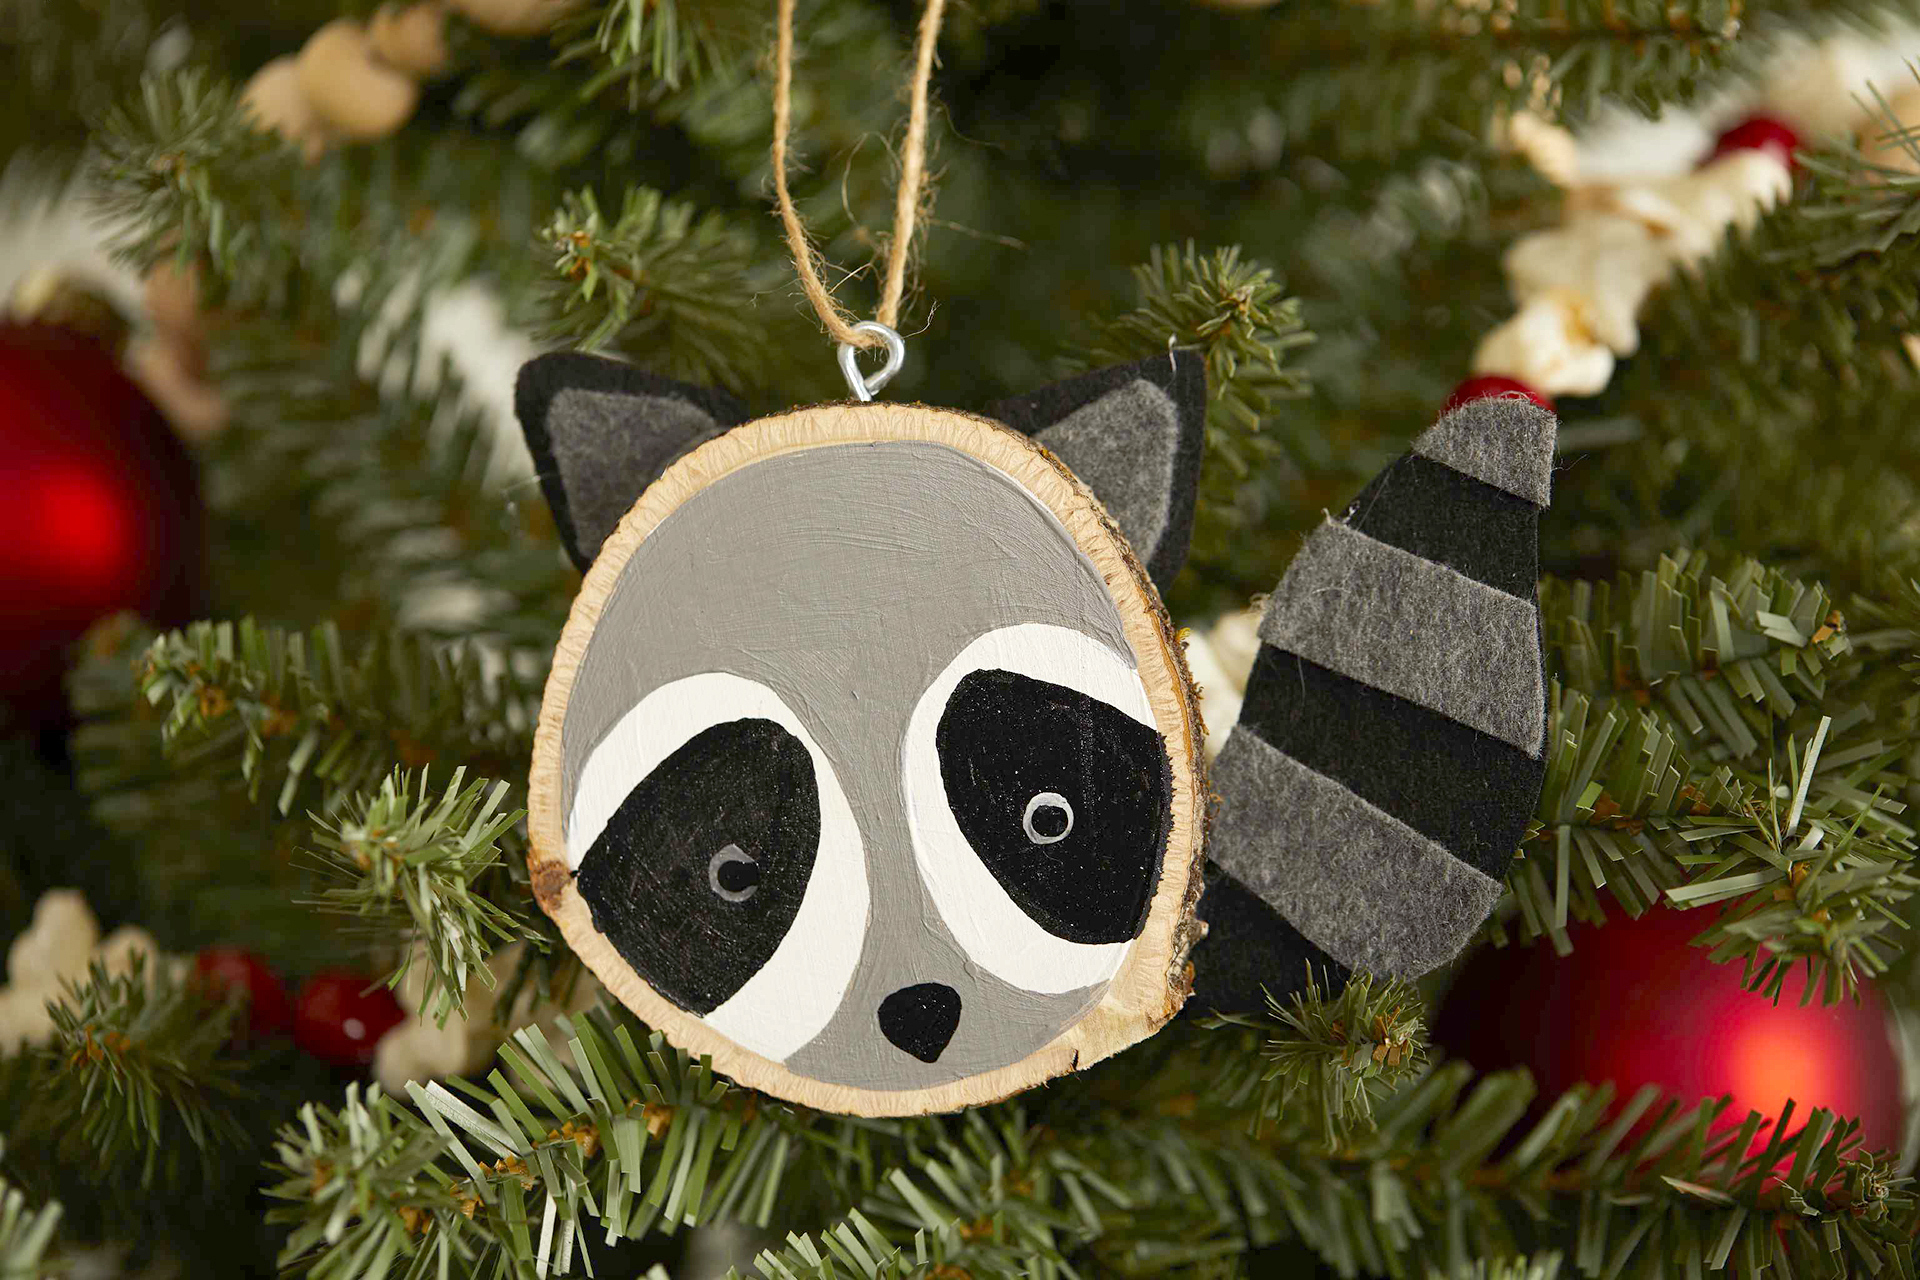 wood slice painted raccoon ornament with felt